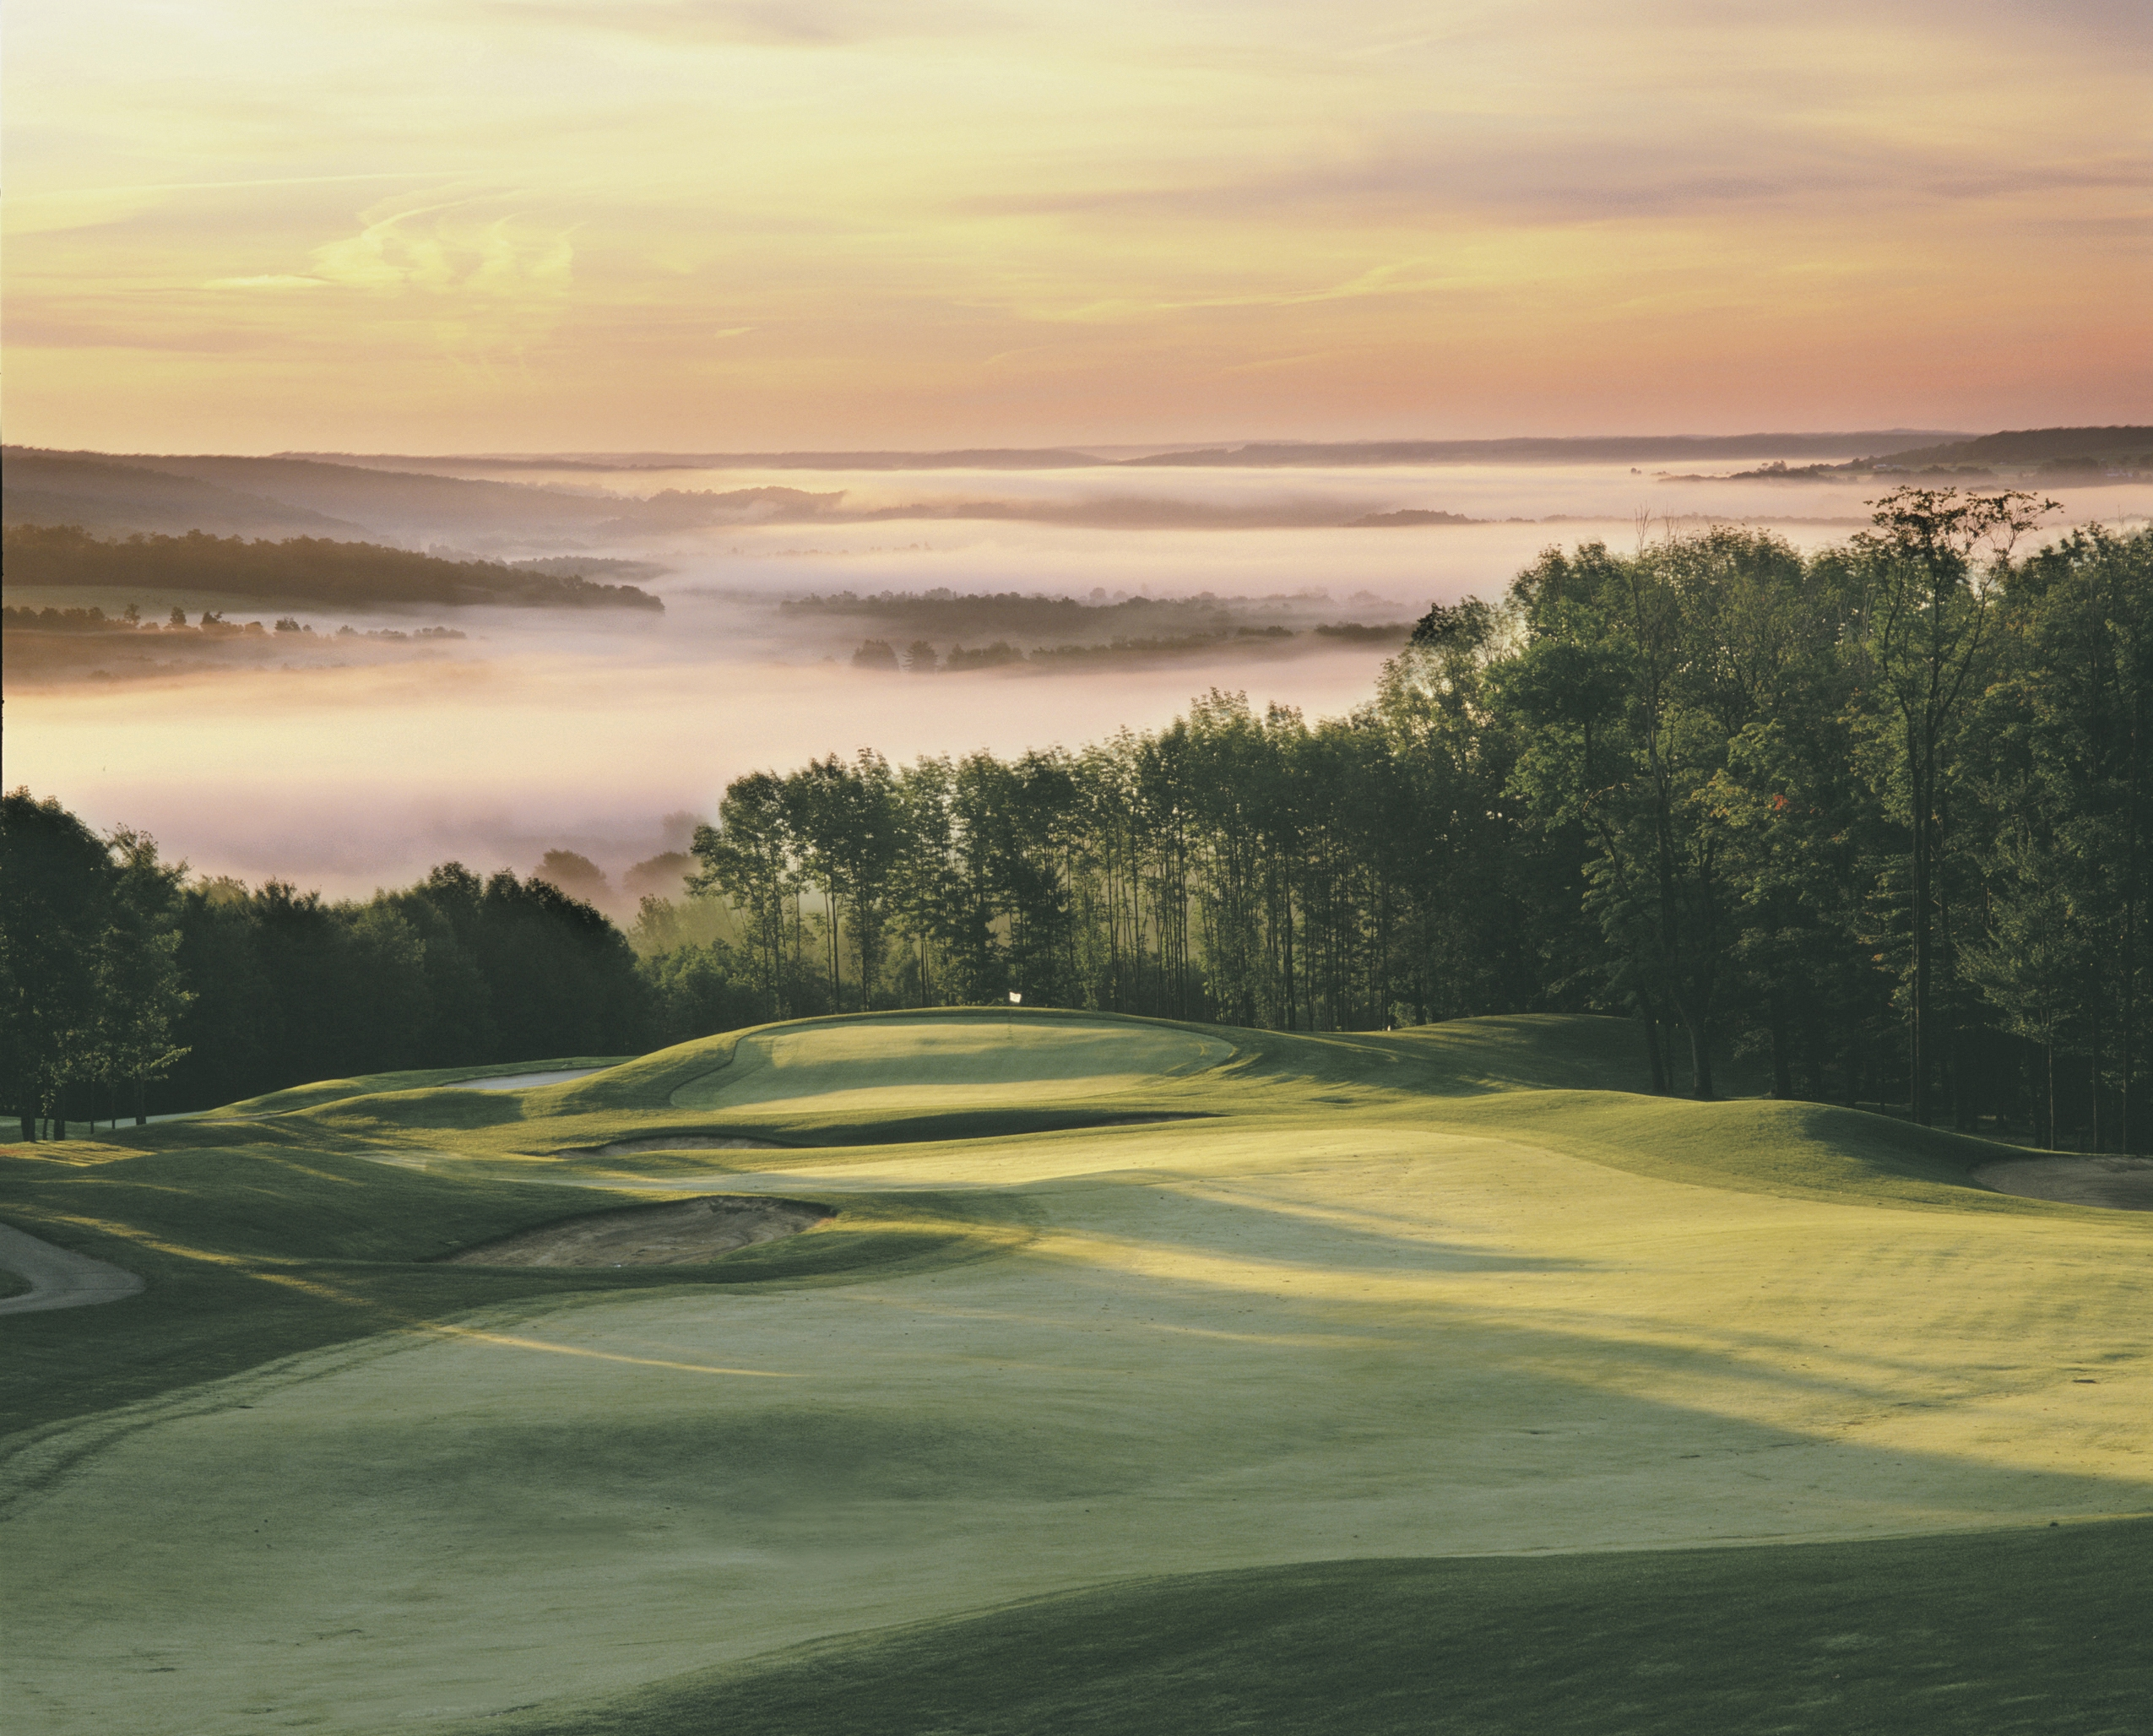 The 12th hole on the Upper Course at Peek'n Peak, which will host the Web.com Tour's LECOM Health Challenge July 7-10.